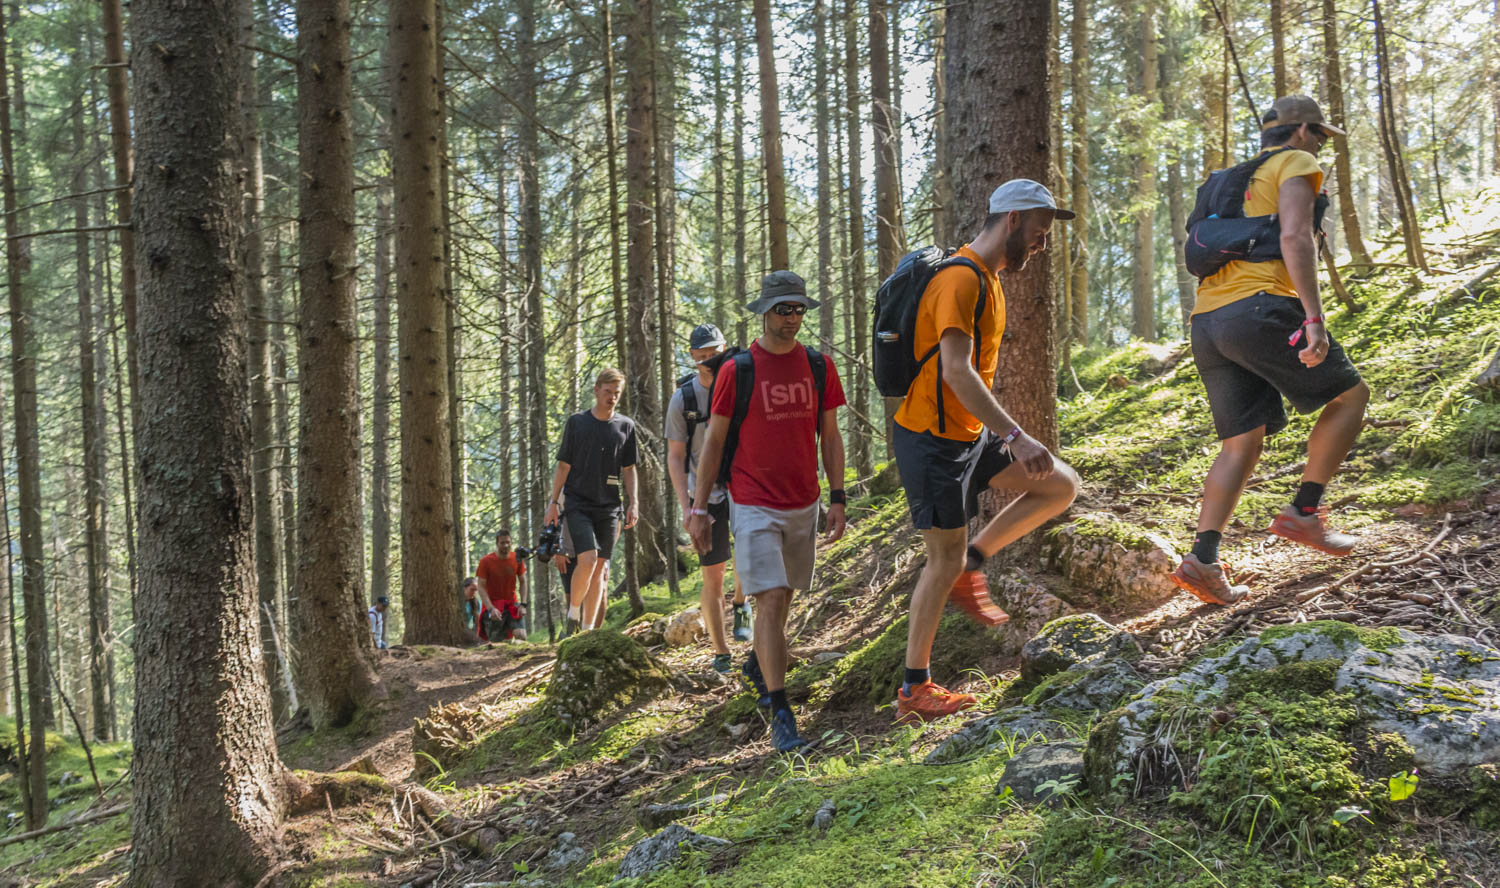 The North Face Mountain Festival hike